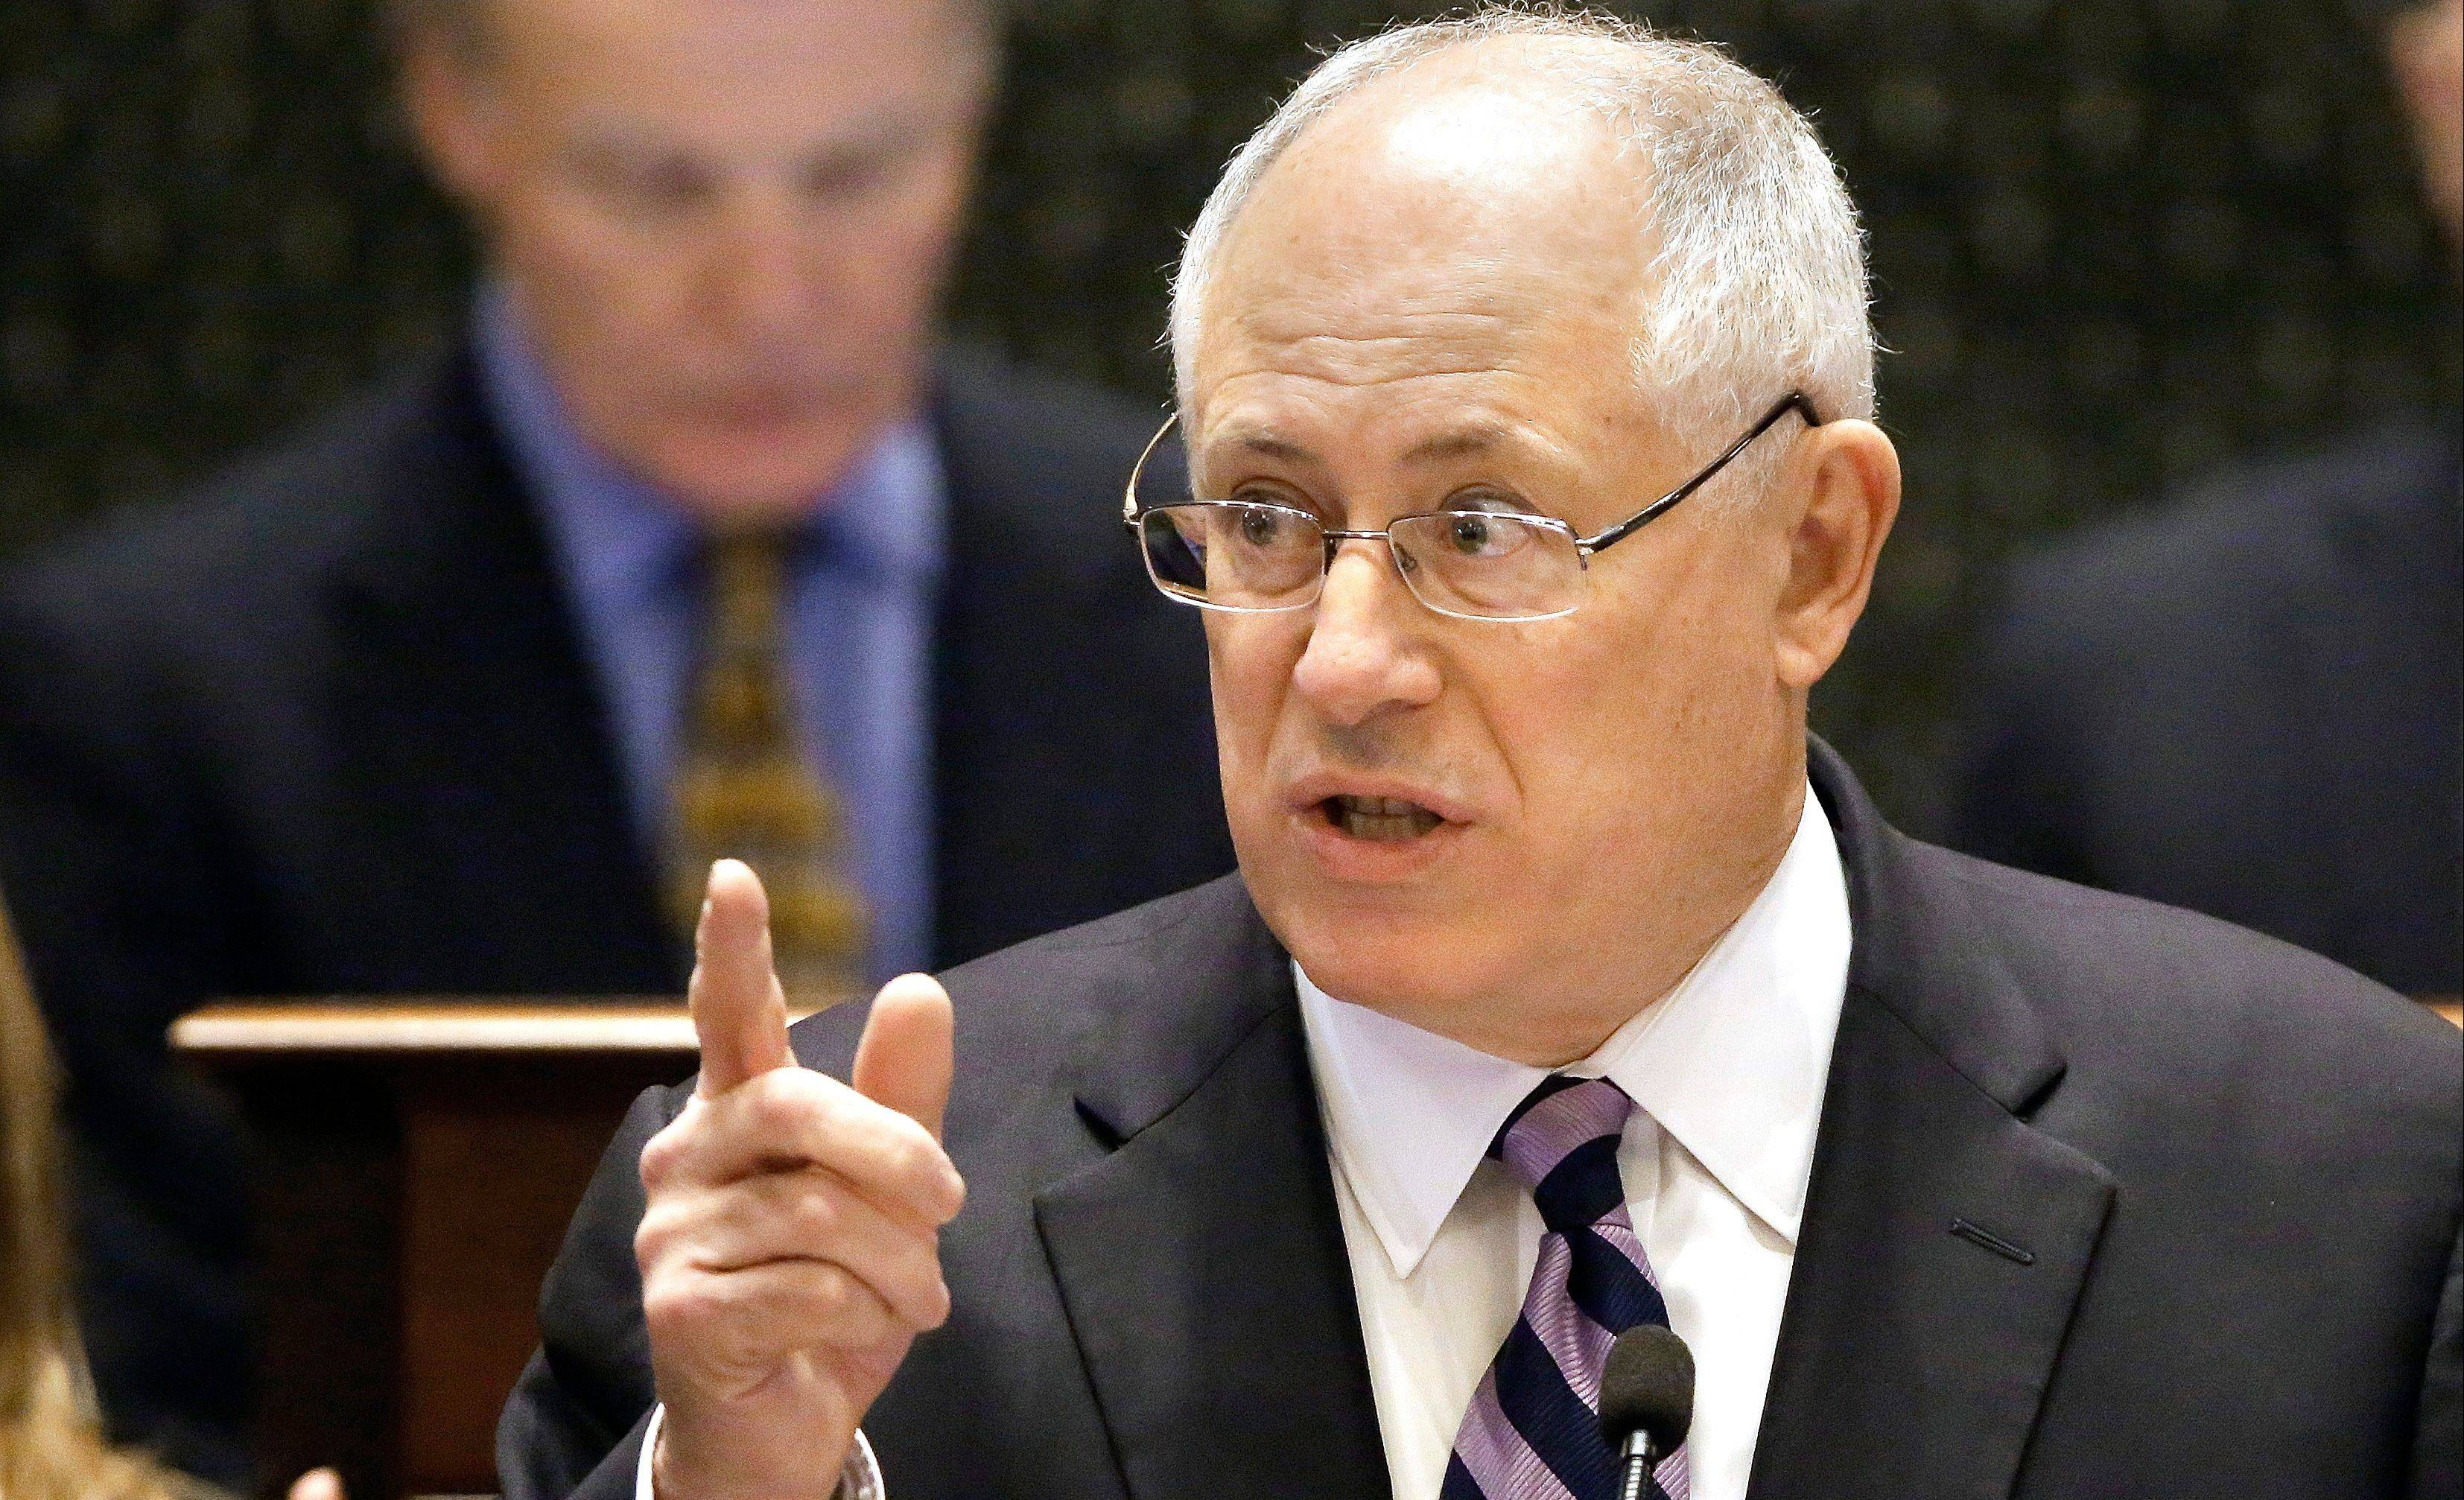 As the official legislative schedule closed out, much of Gov. Quinn's ambitious agenda for 2013 was still hanging in the balance, and lawmakers were talking about the need to return for a special session, at least to deal with the pension crisis.